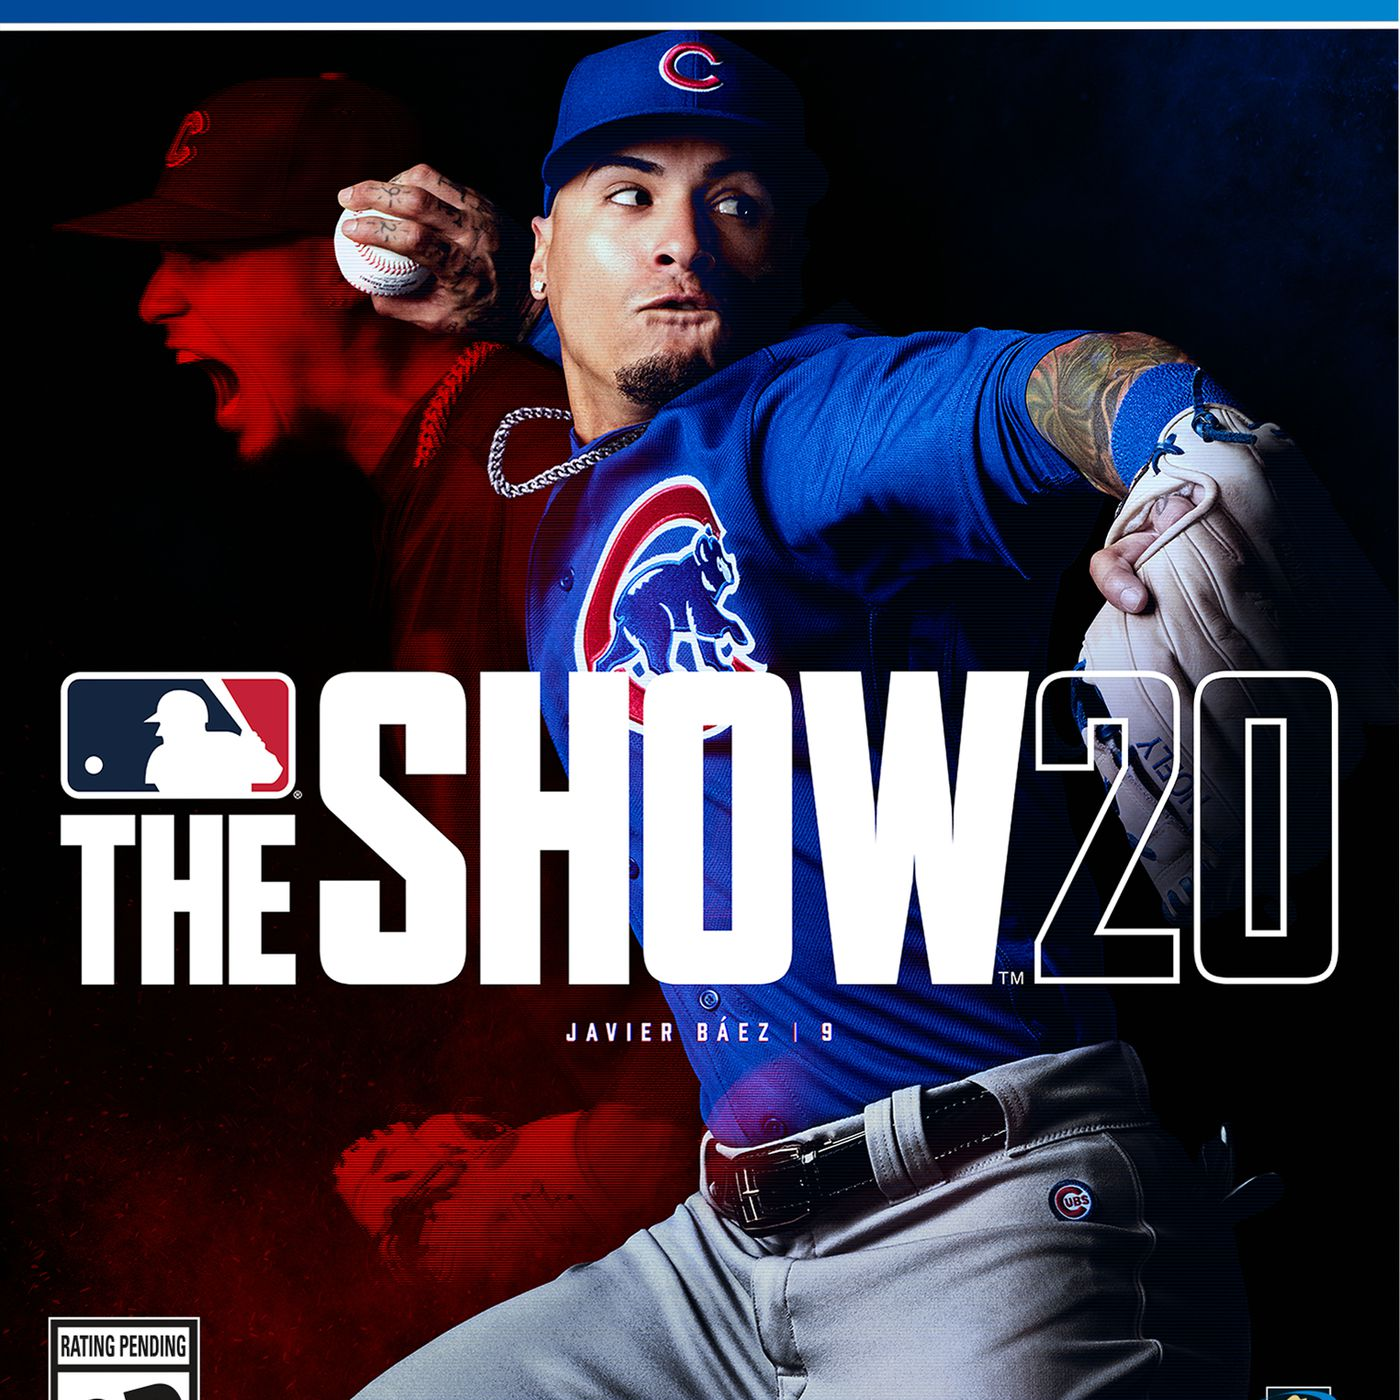 Chicago Cubs shortstop Javier Baez is the cover athlete for MLB The Show 2020. Baez is the first Chicago Cub to grace the cover of the MLB's flagship video game.